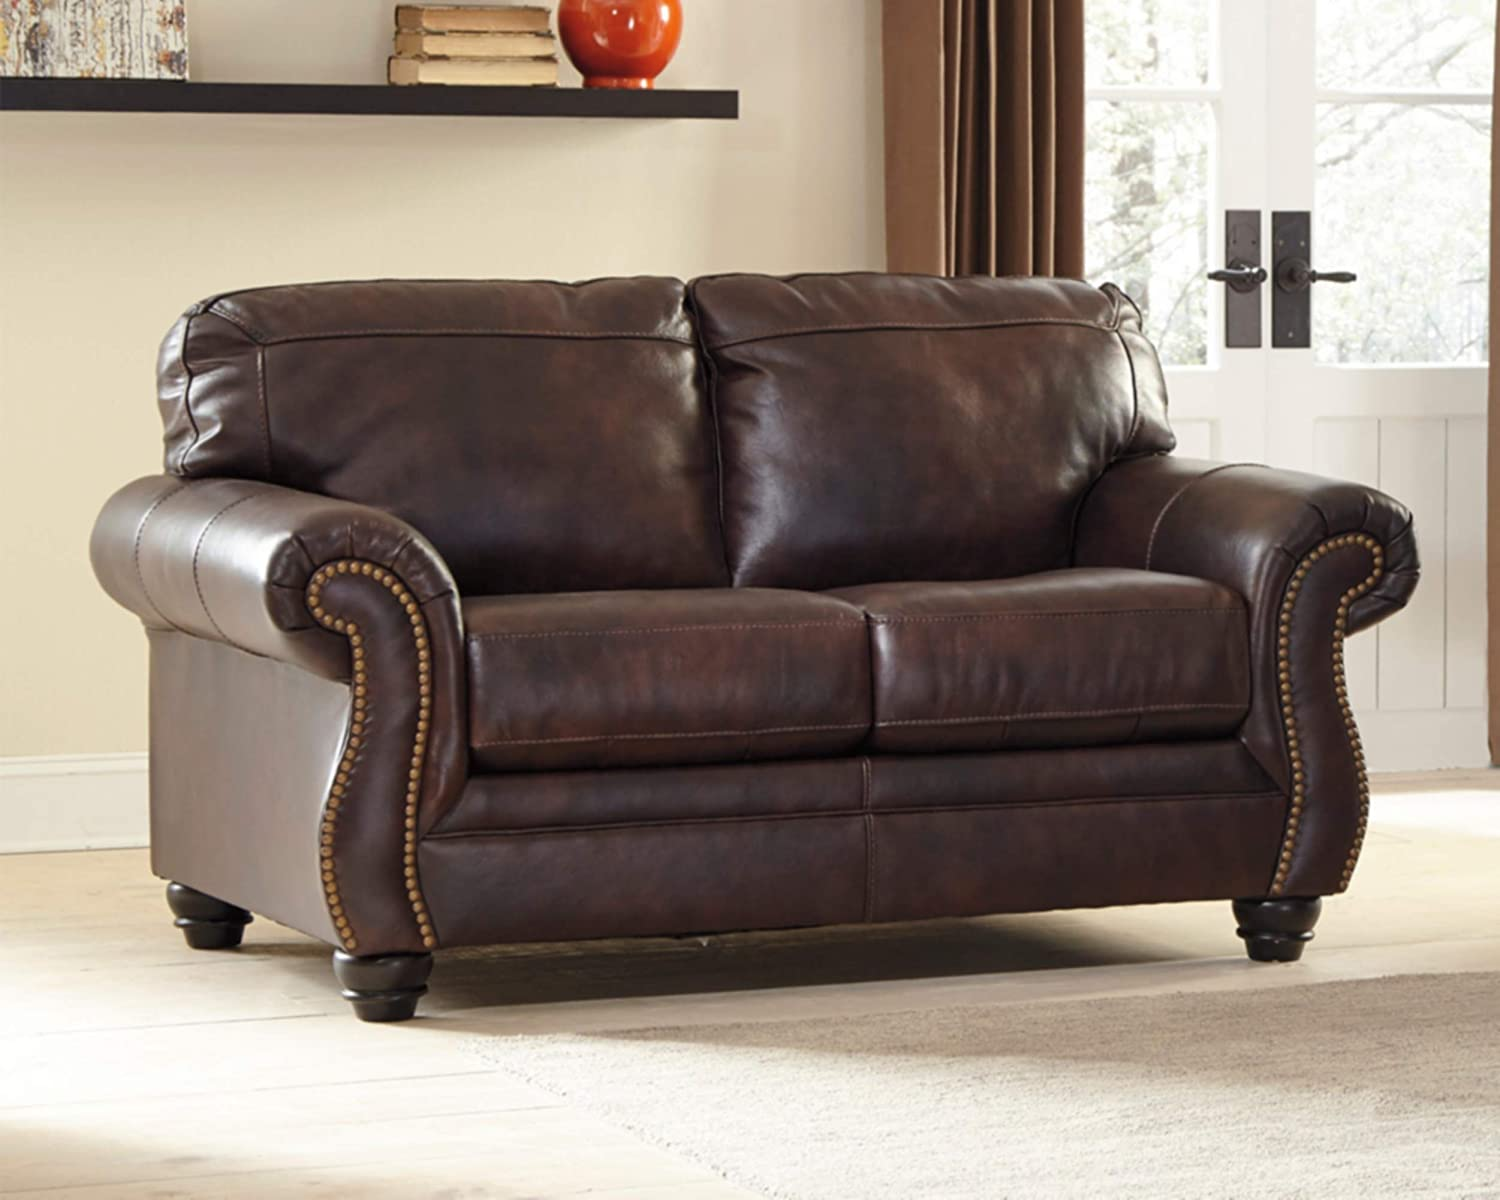 Ashley Furniture Signature Design – Bristan Traditional Style Faux Leather Loveseat with Nailhead Trim – Walnut Brown